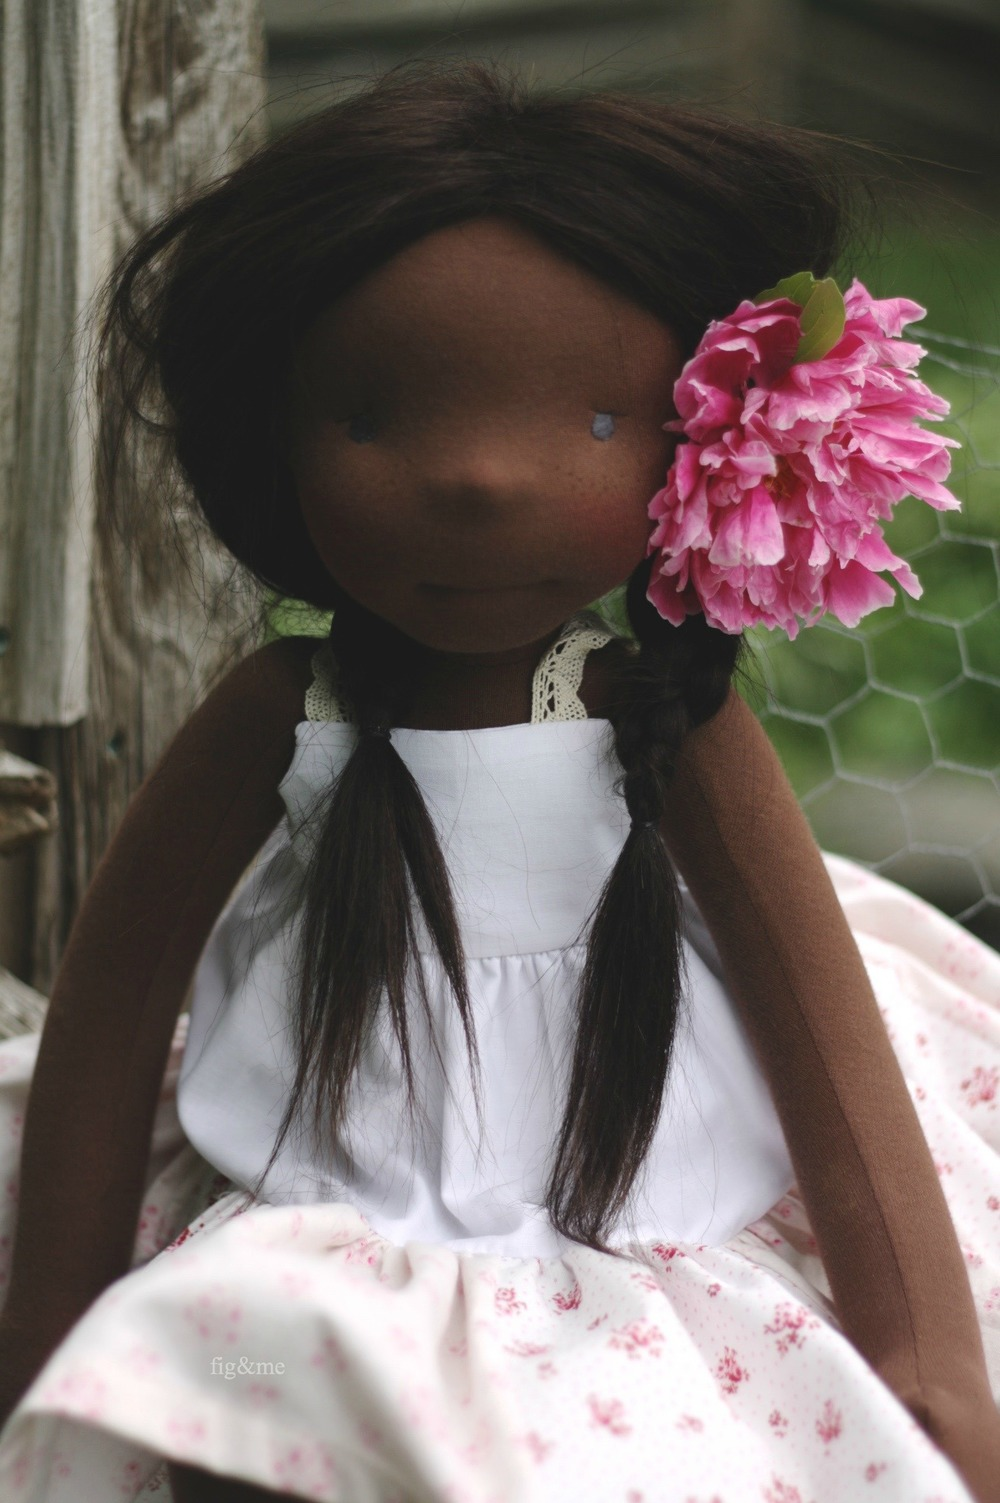 Hettie Gray, a natural doll by Fig & me.